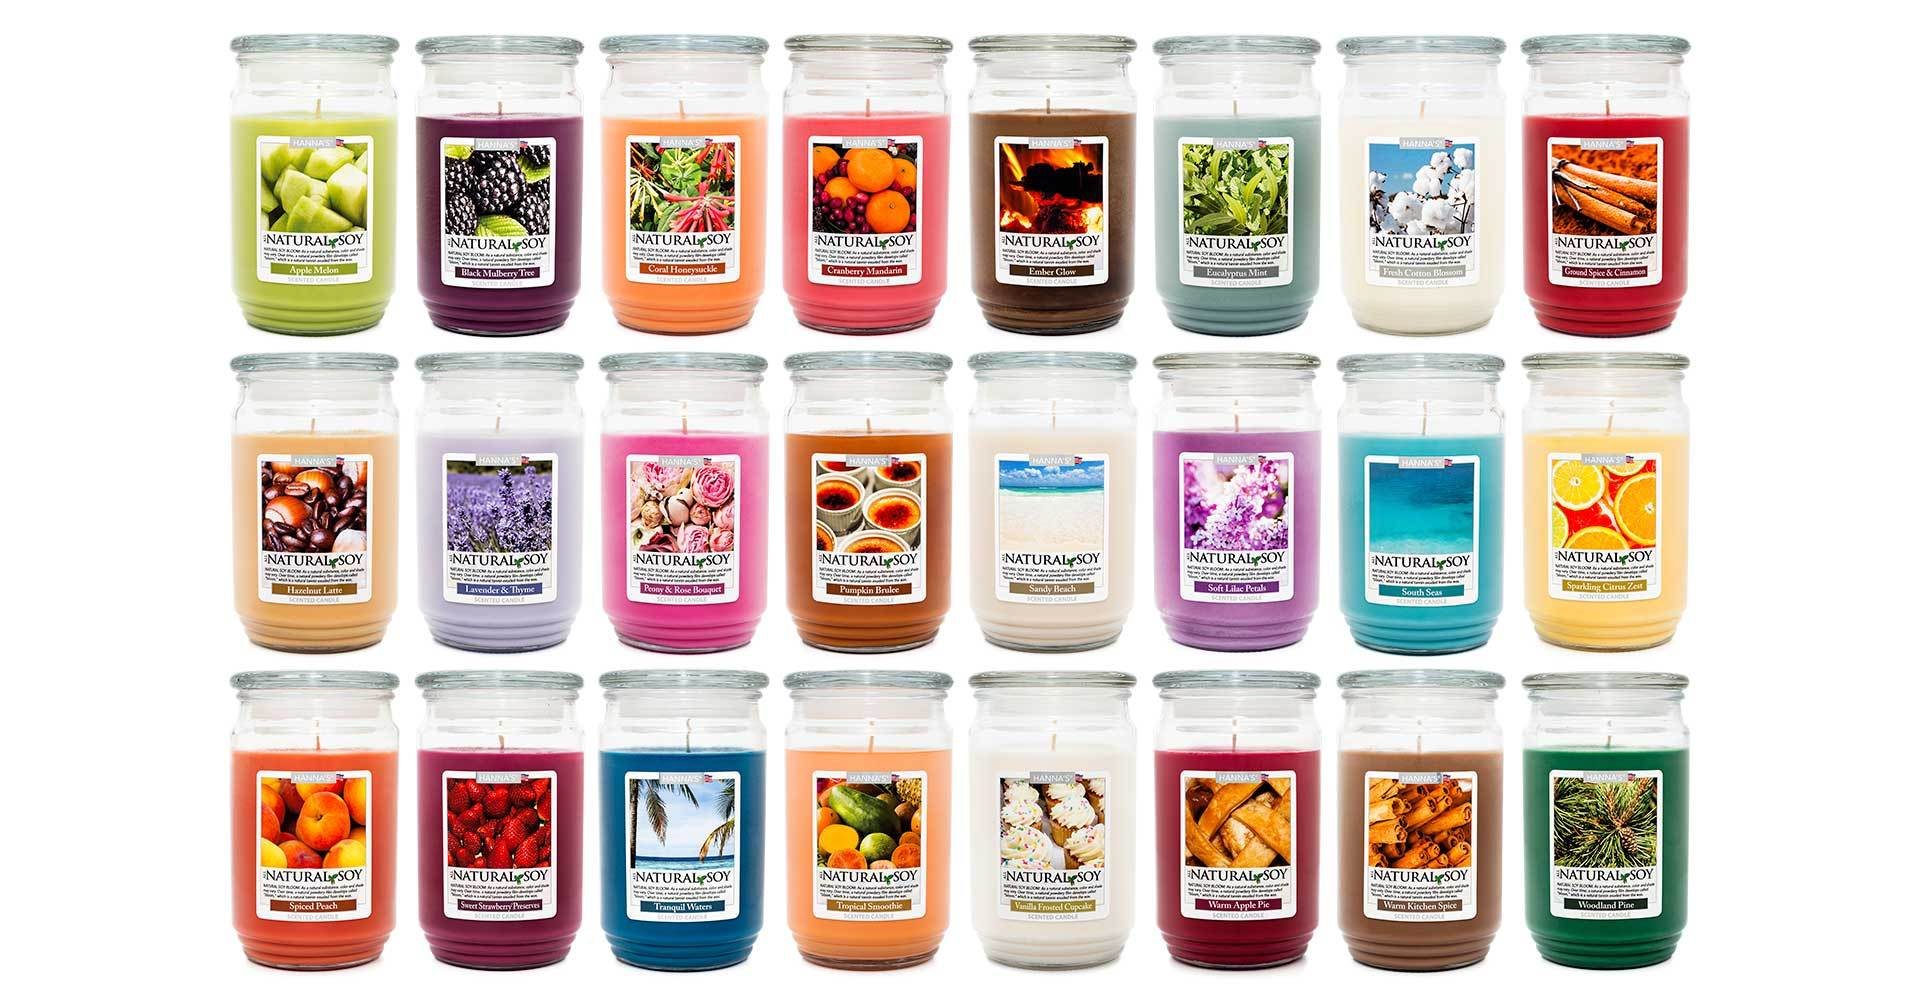 Natural Soy Ground Cinnamon & Spice Scented Soy Candle 100% Soy Candles Candlemart.com $ 11.99